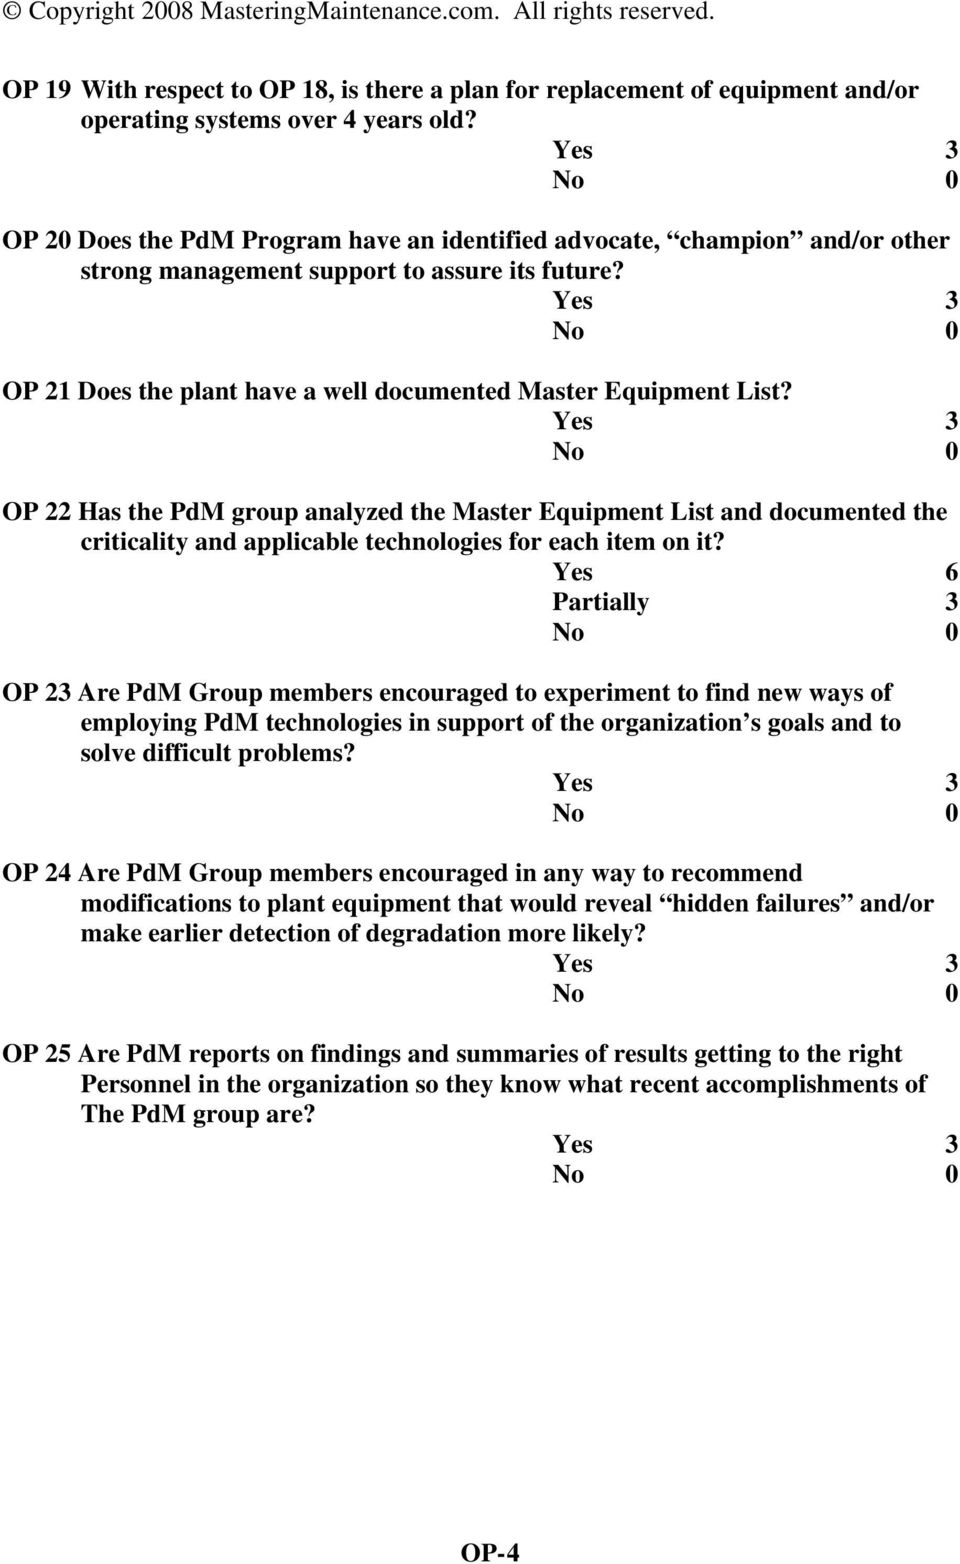 OP 22 Has the PdM group analyzed the Master Equipment List and documented the criticality and applicable technologies for each item on it?